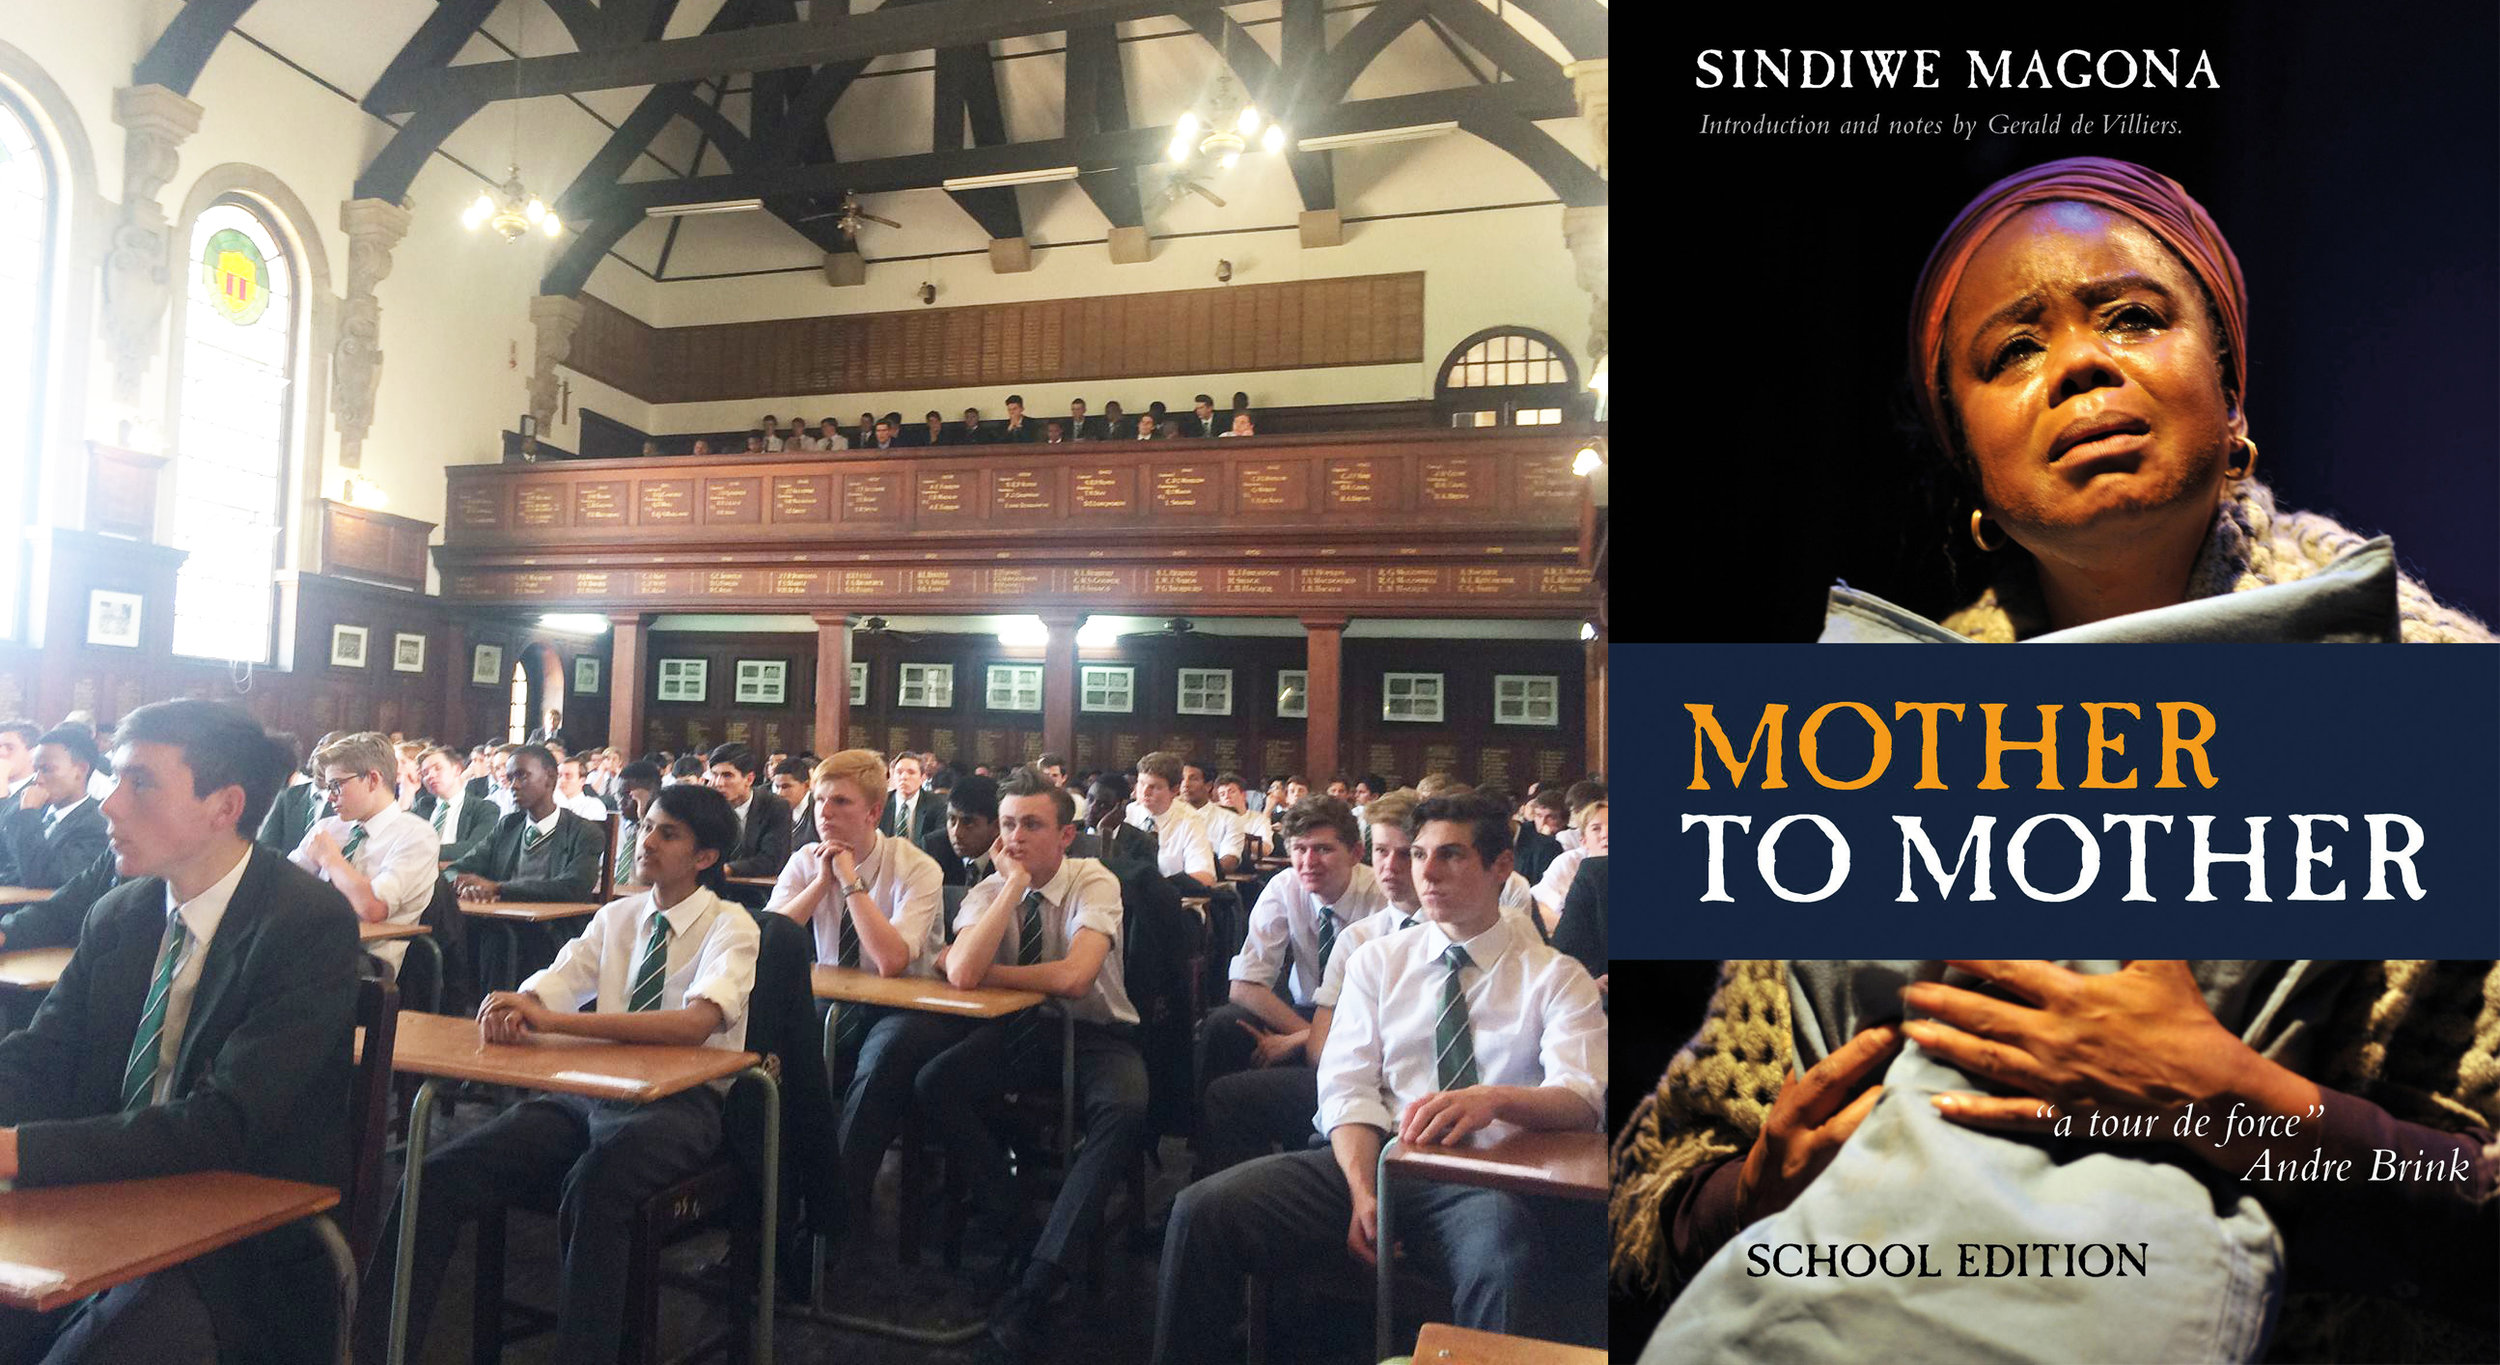 Grade 10 learners at King Edward listen to Magona talk about her book,  Mother to Mother.